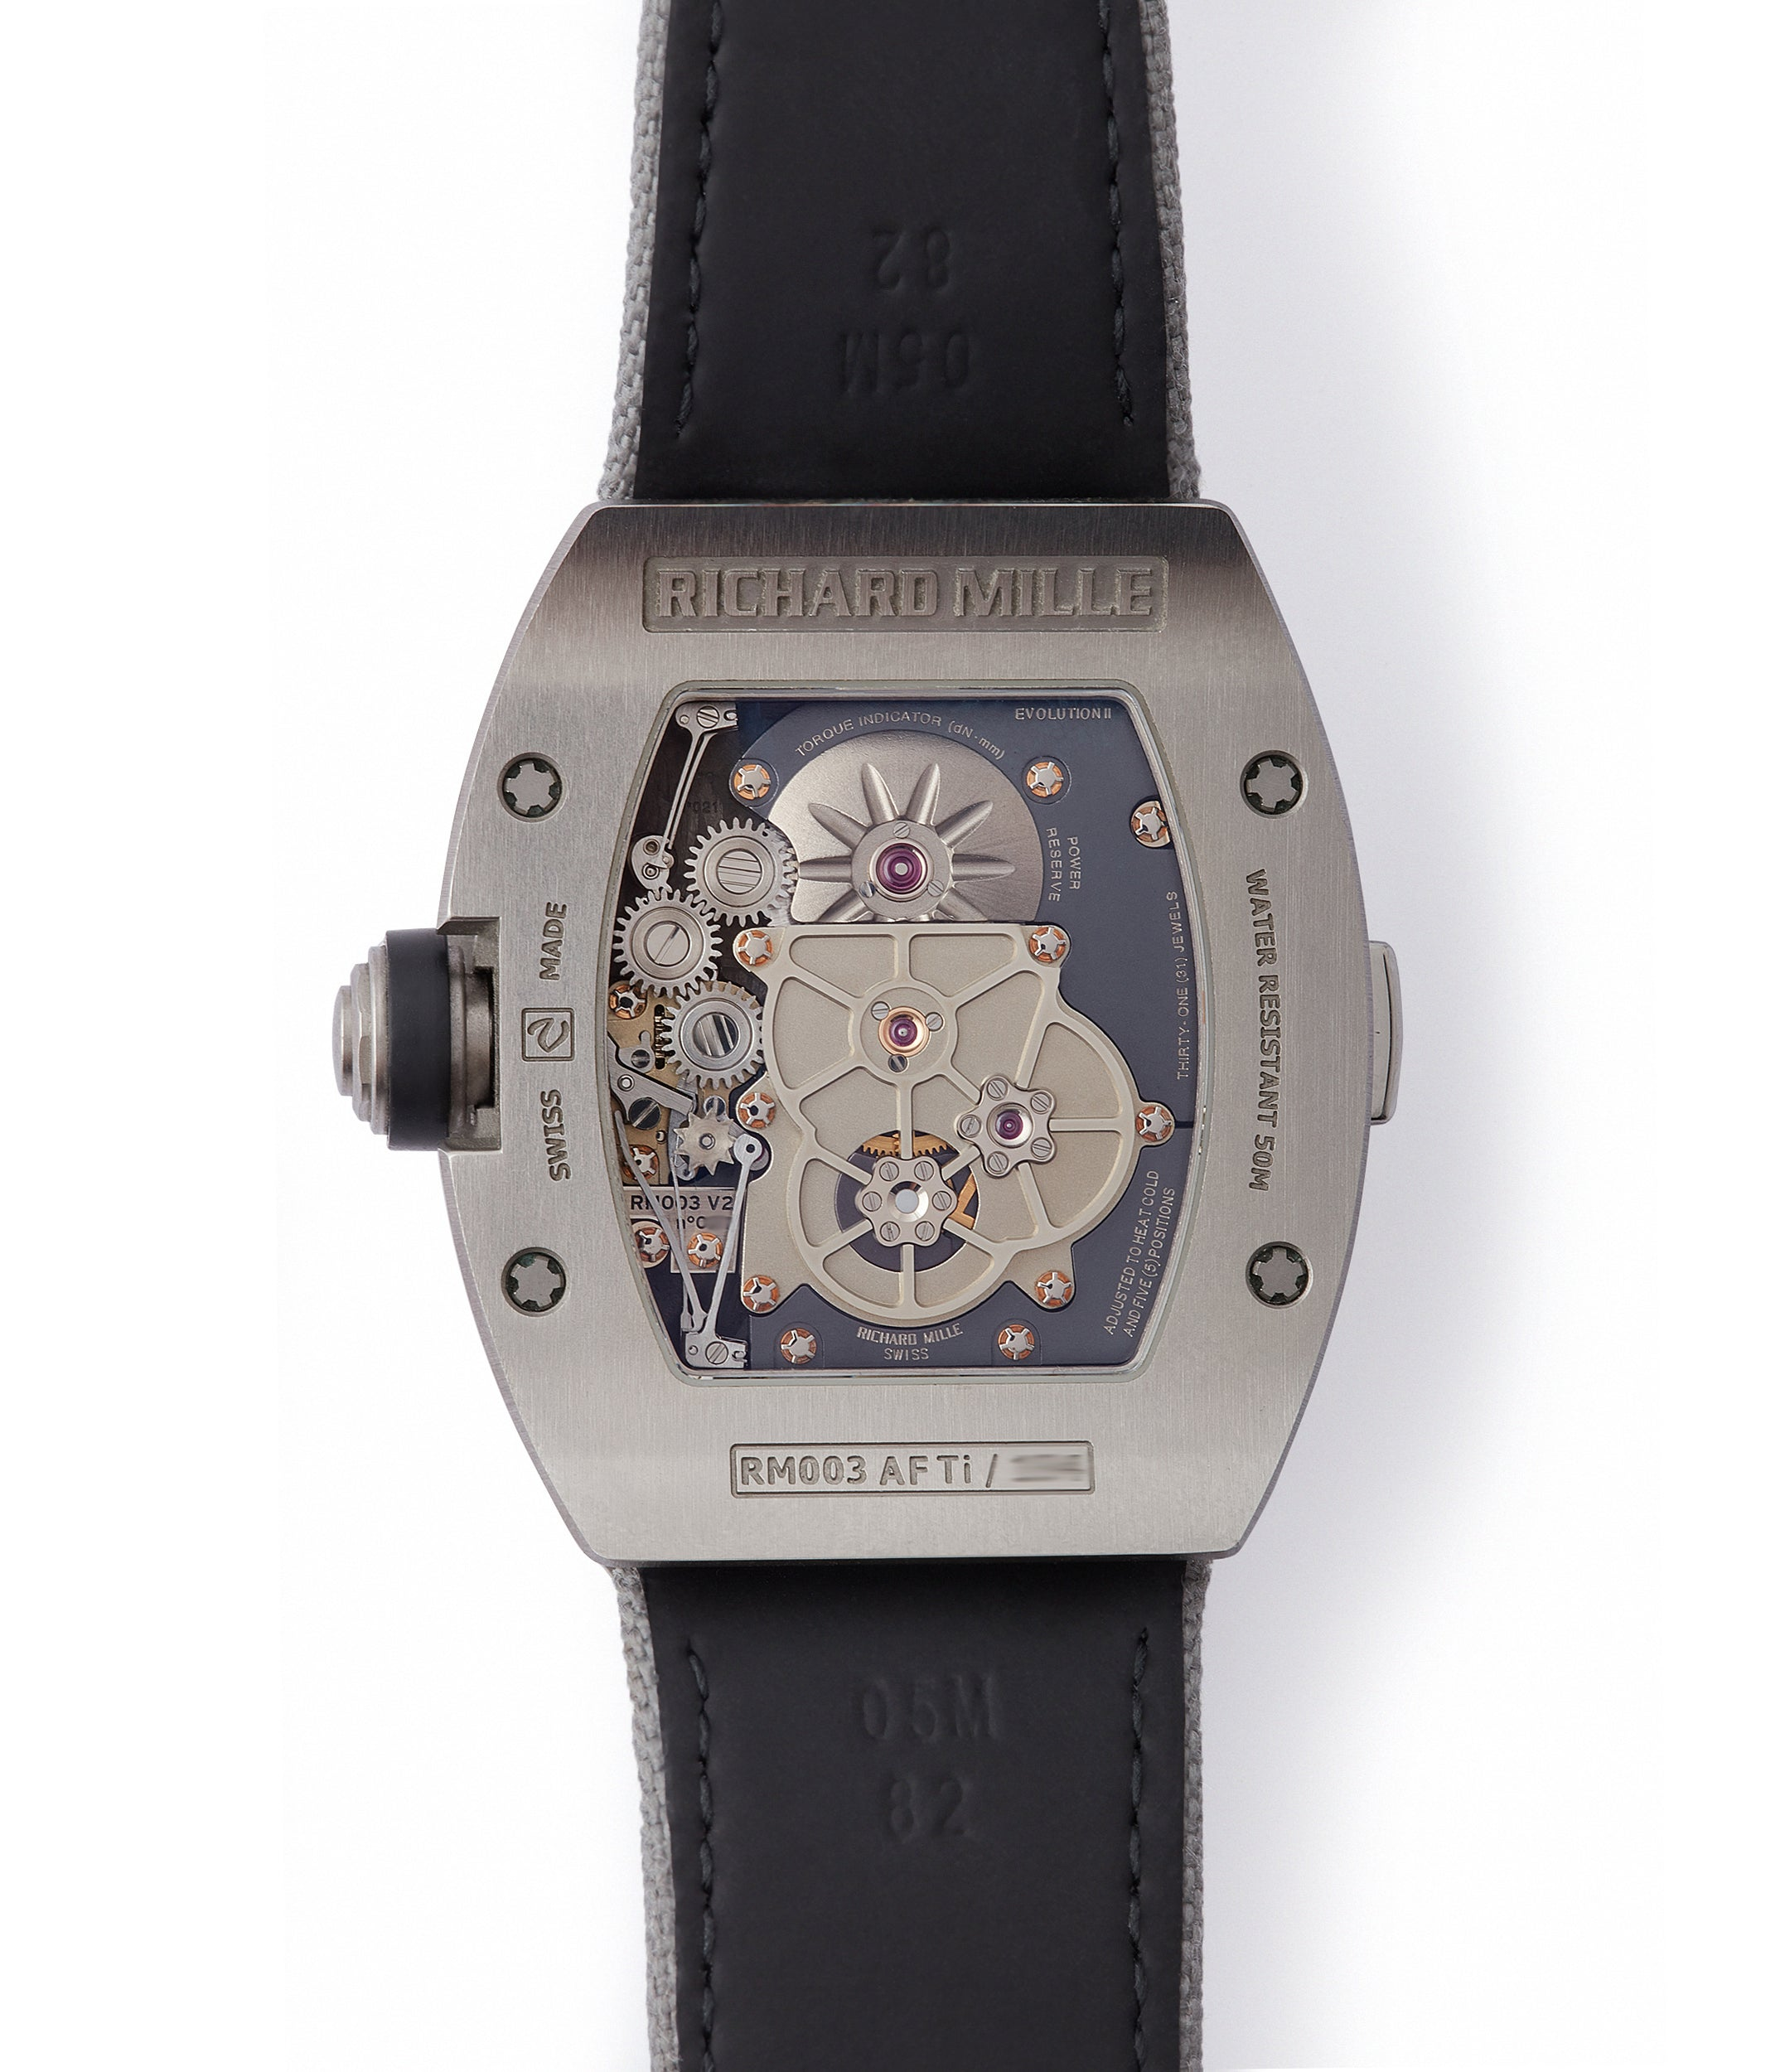 Calibre RM003-V2 movement Richard Mille titanium tourbillon dual-time pre-owned rare independent watchmaker sports traveller watch for sale online at A Collected Man London UK specialist of rare watches